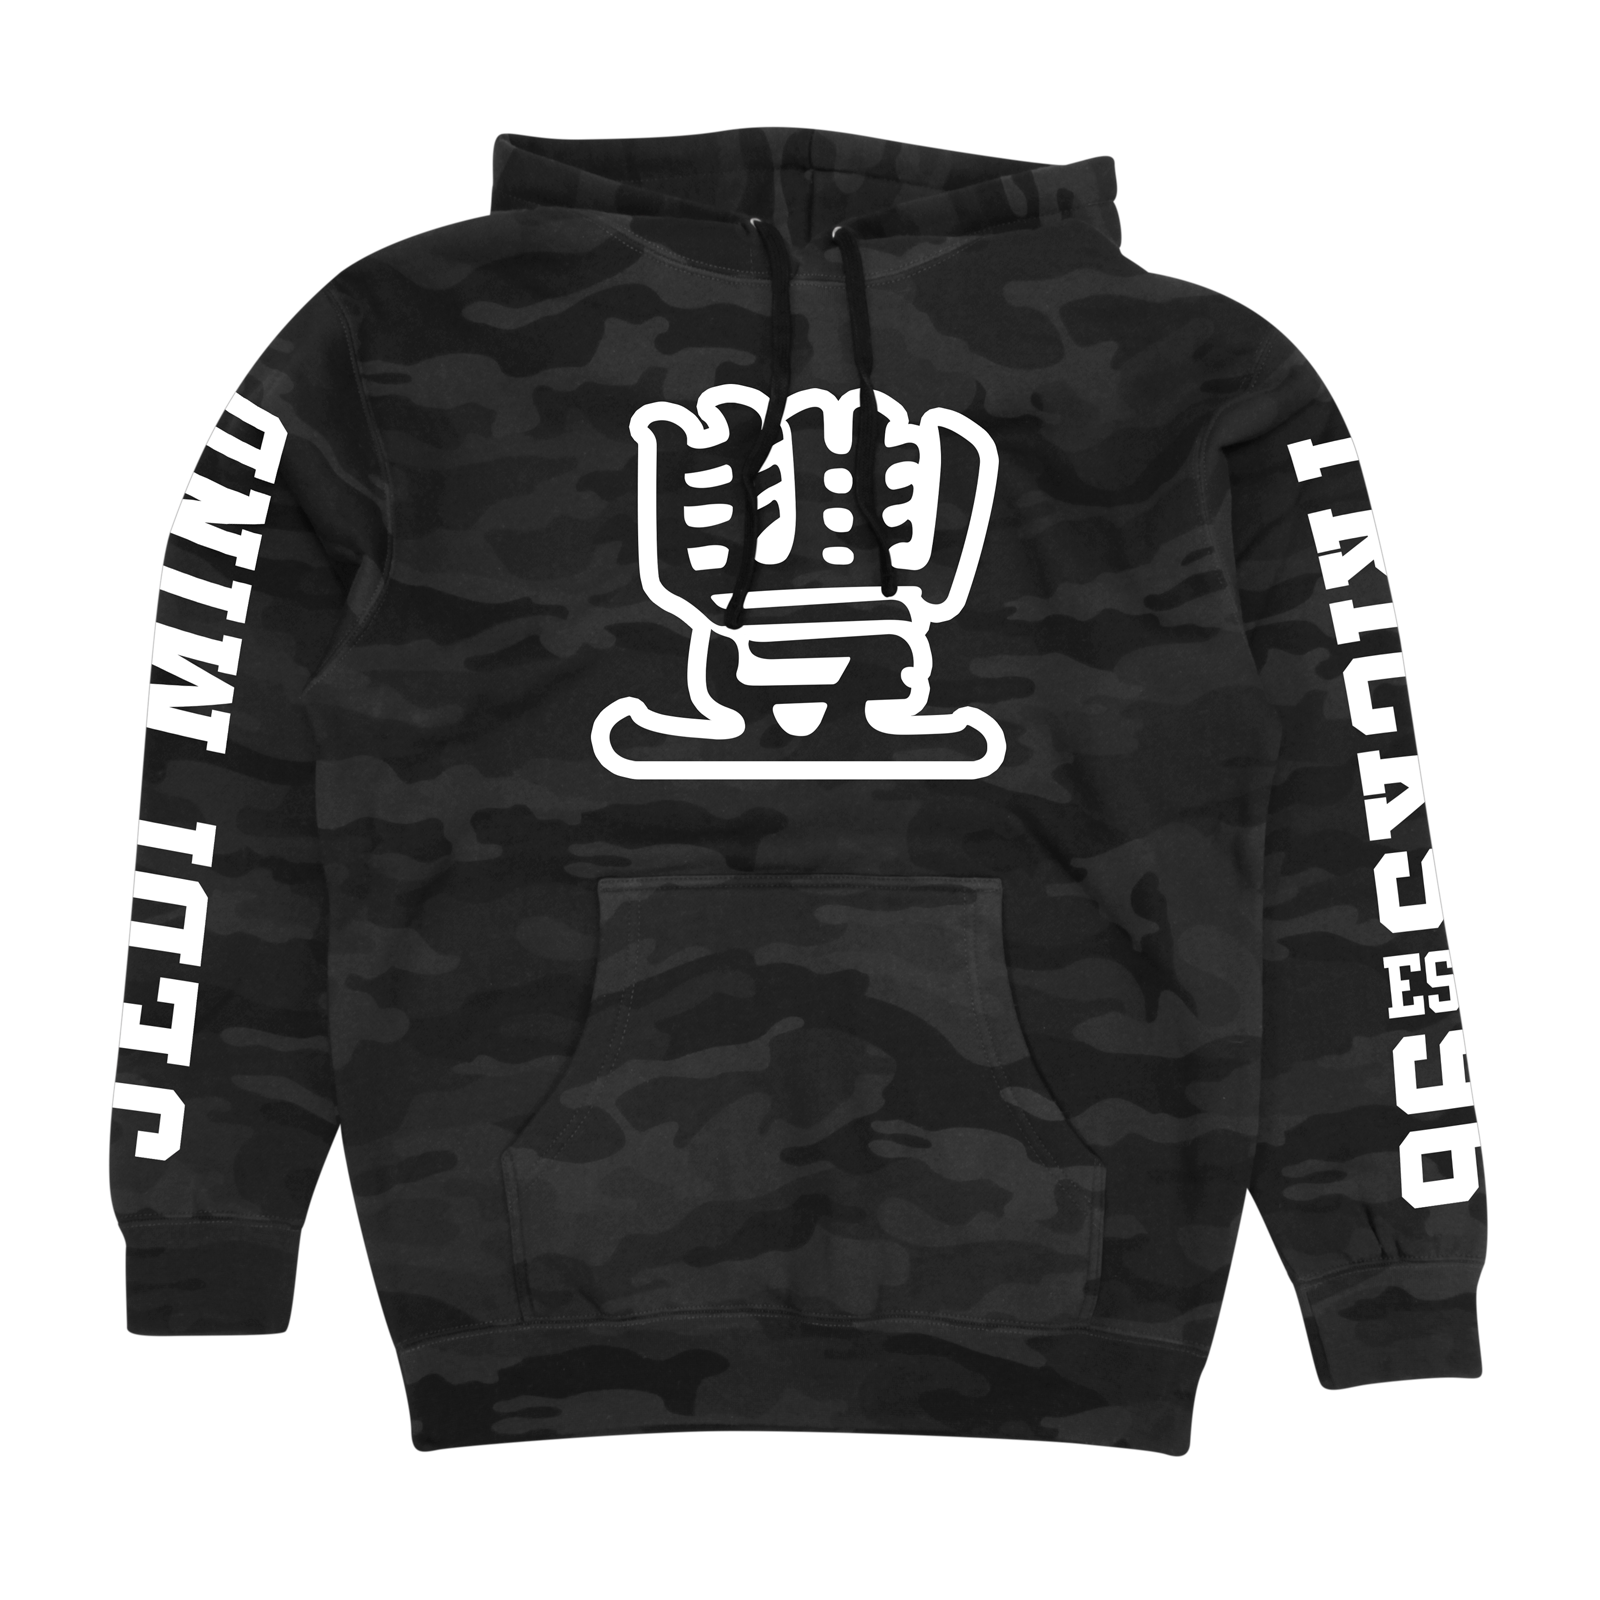 JMT - Broad Street on Black Camo Hoodie